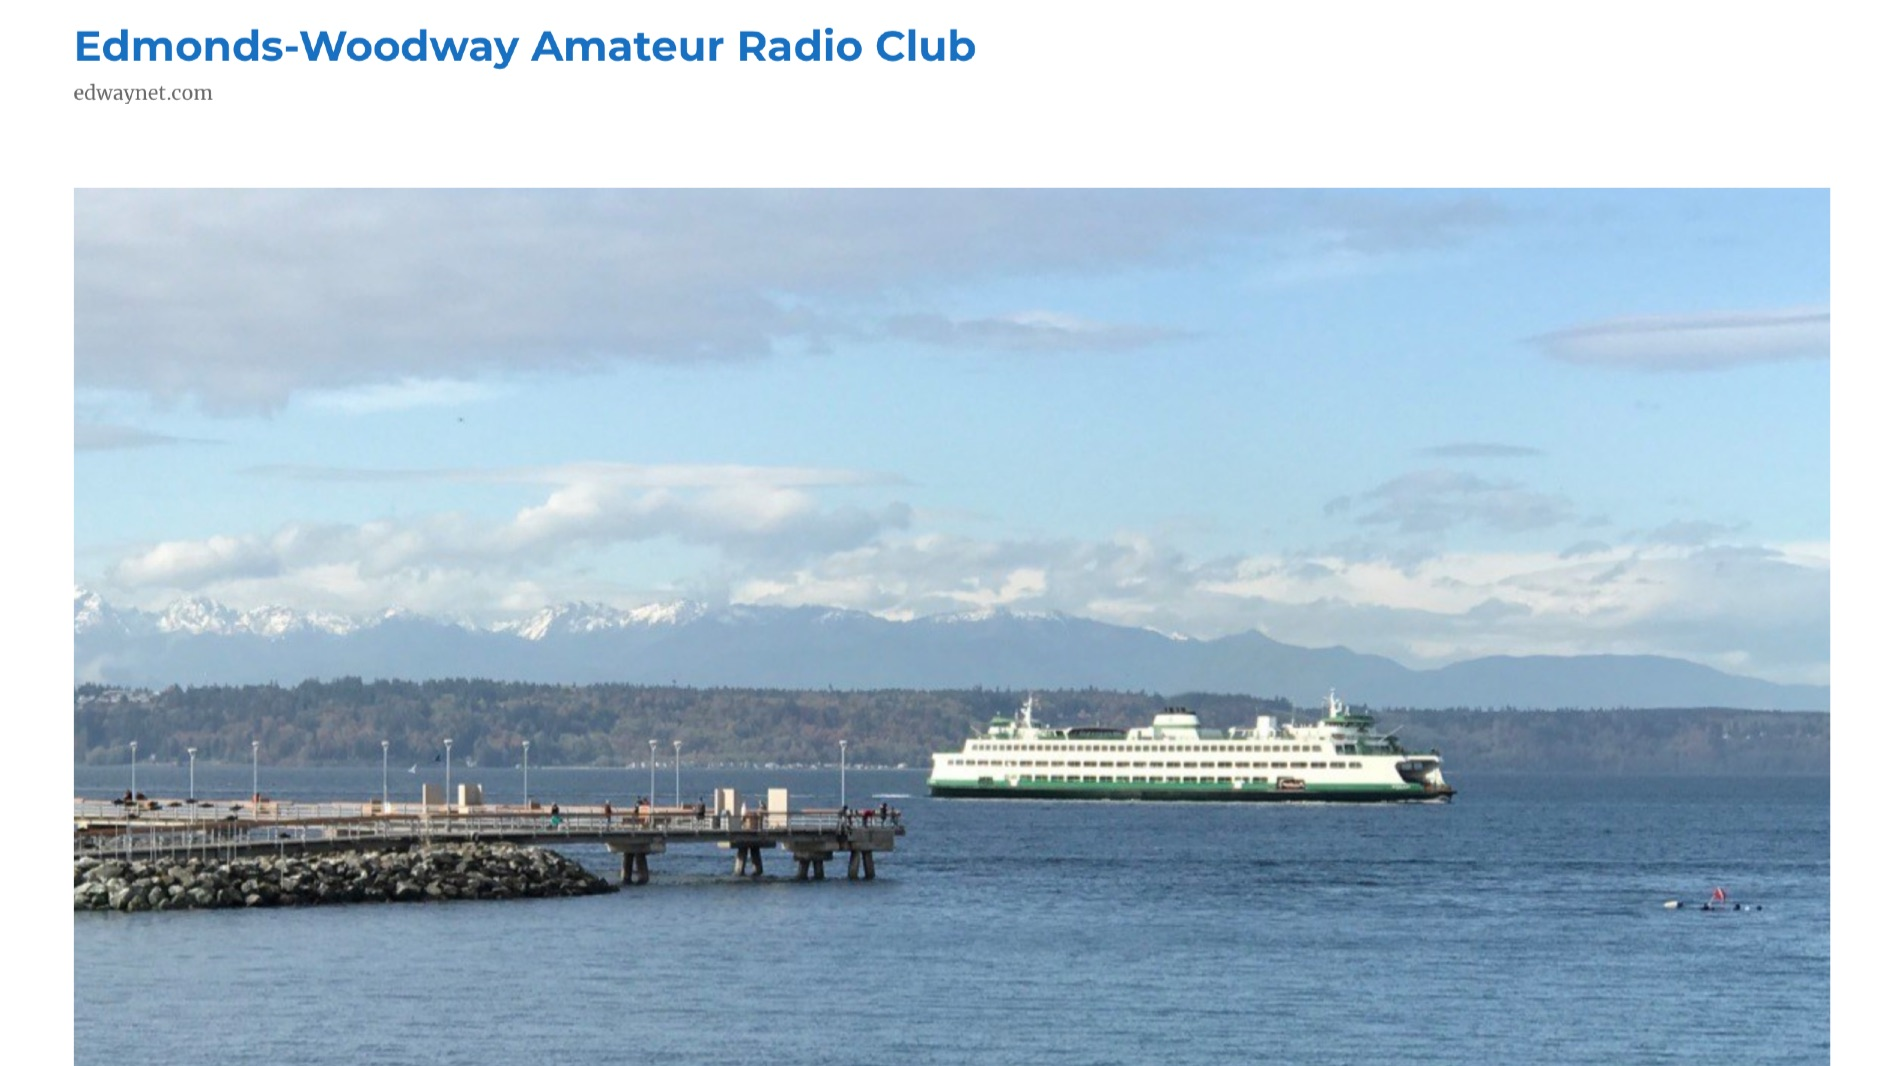 Edmonds-Woodway Amateur Radio Club